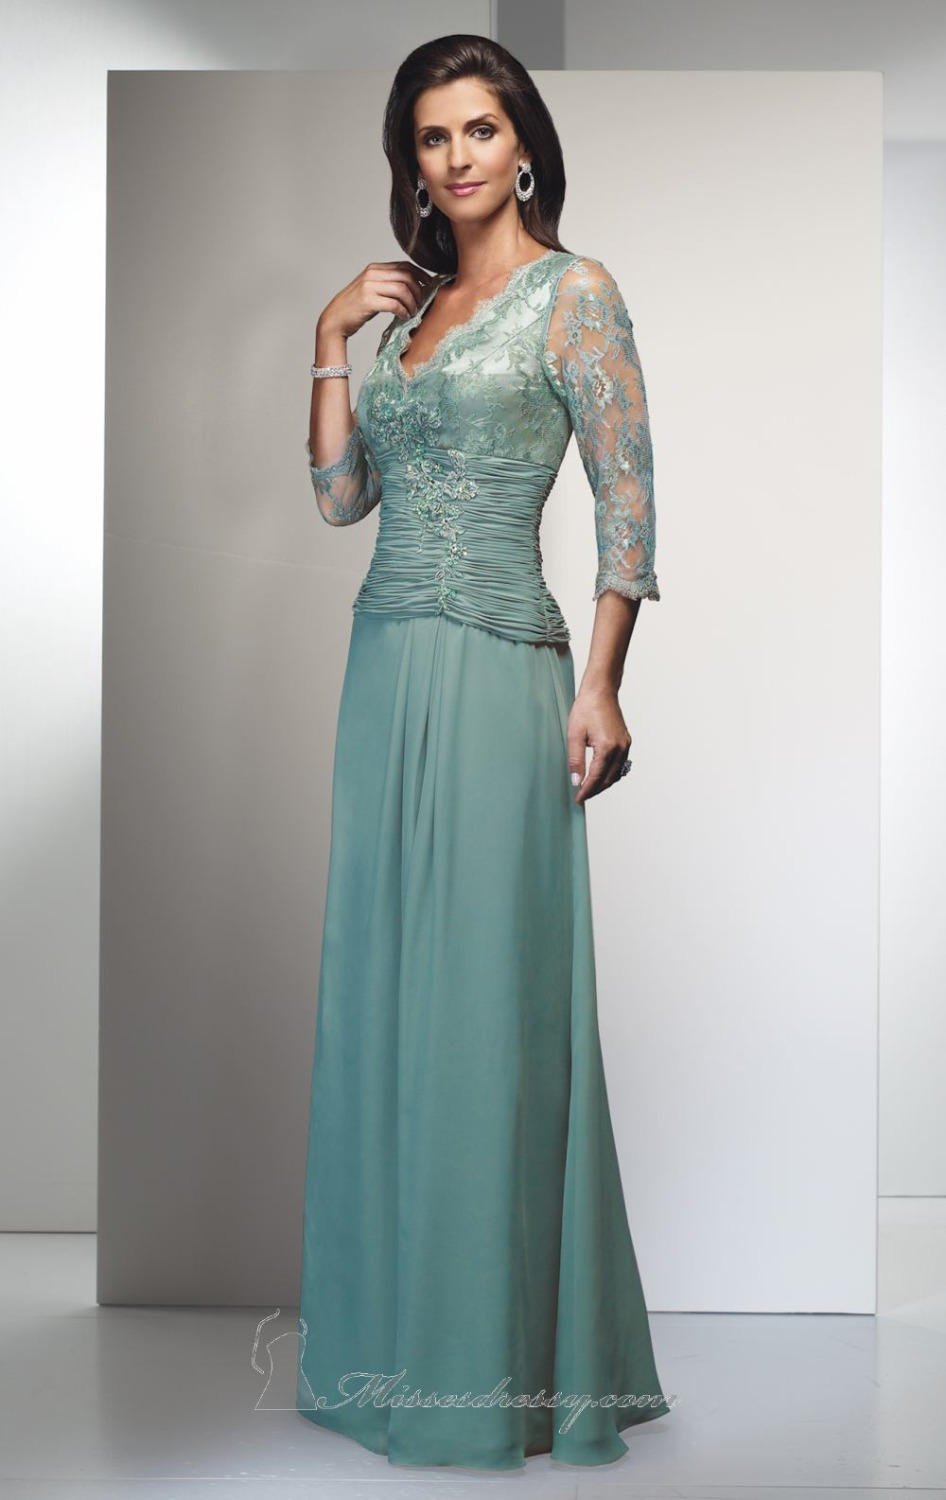 Fancy Pant Suits For Weddings. Sequin Lace Angel Sleeve Dress ...